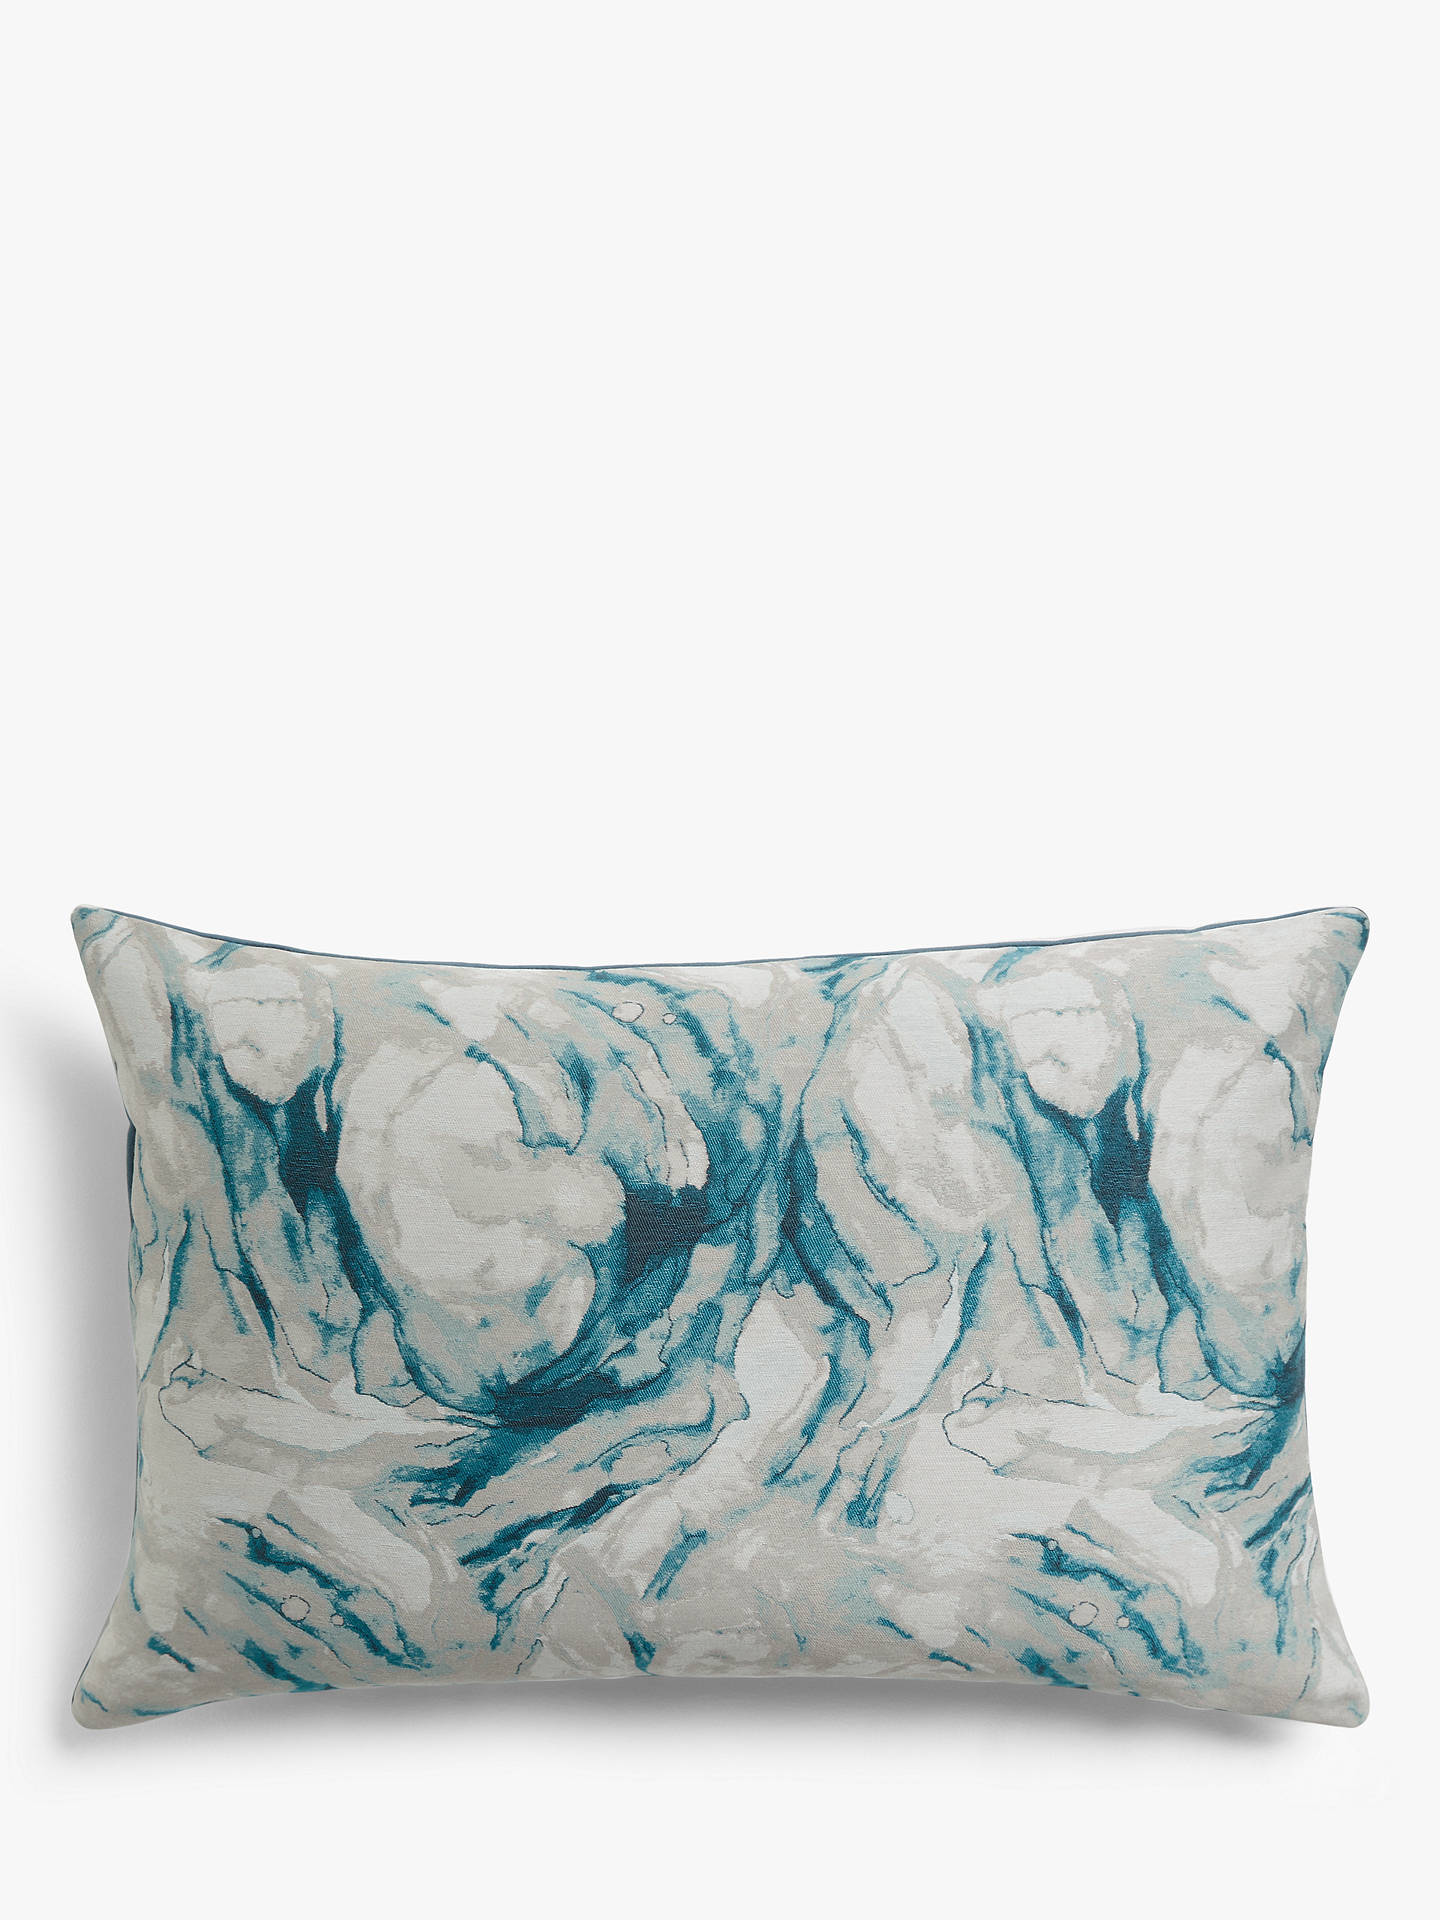 Buy John Lewis & Partners Agate Cushion, Soft Teal Online at johnlewis.com